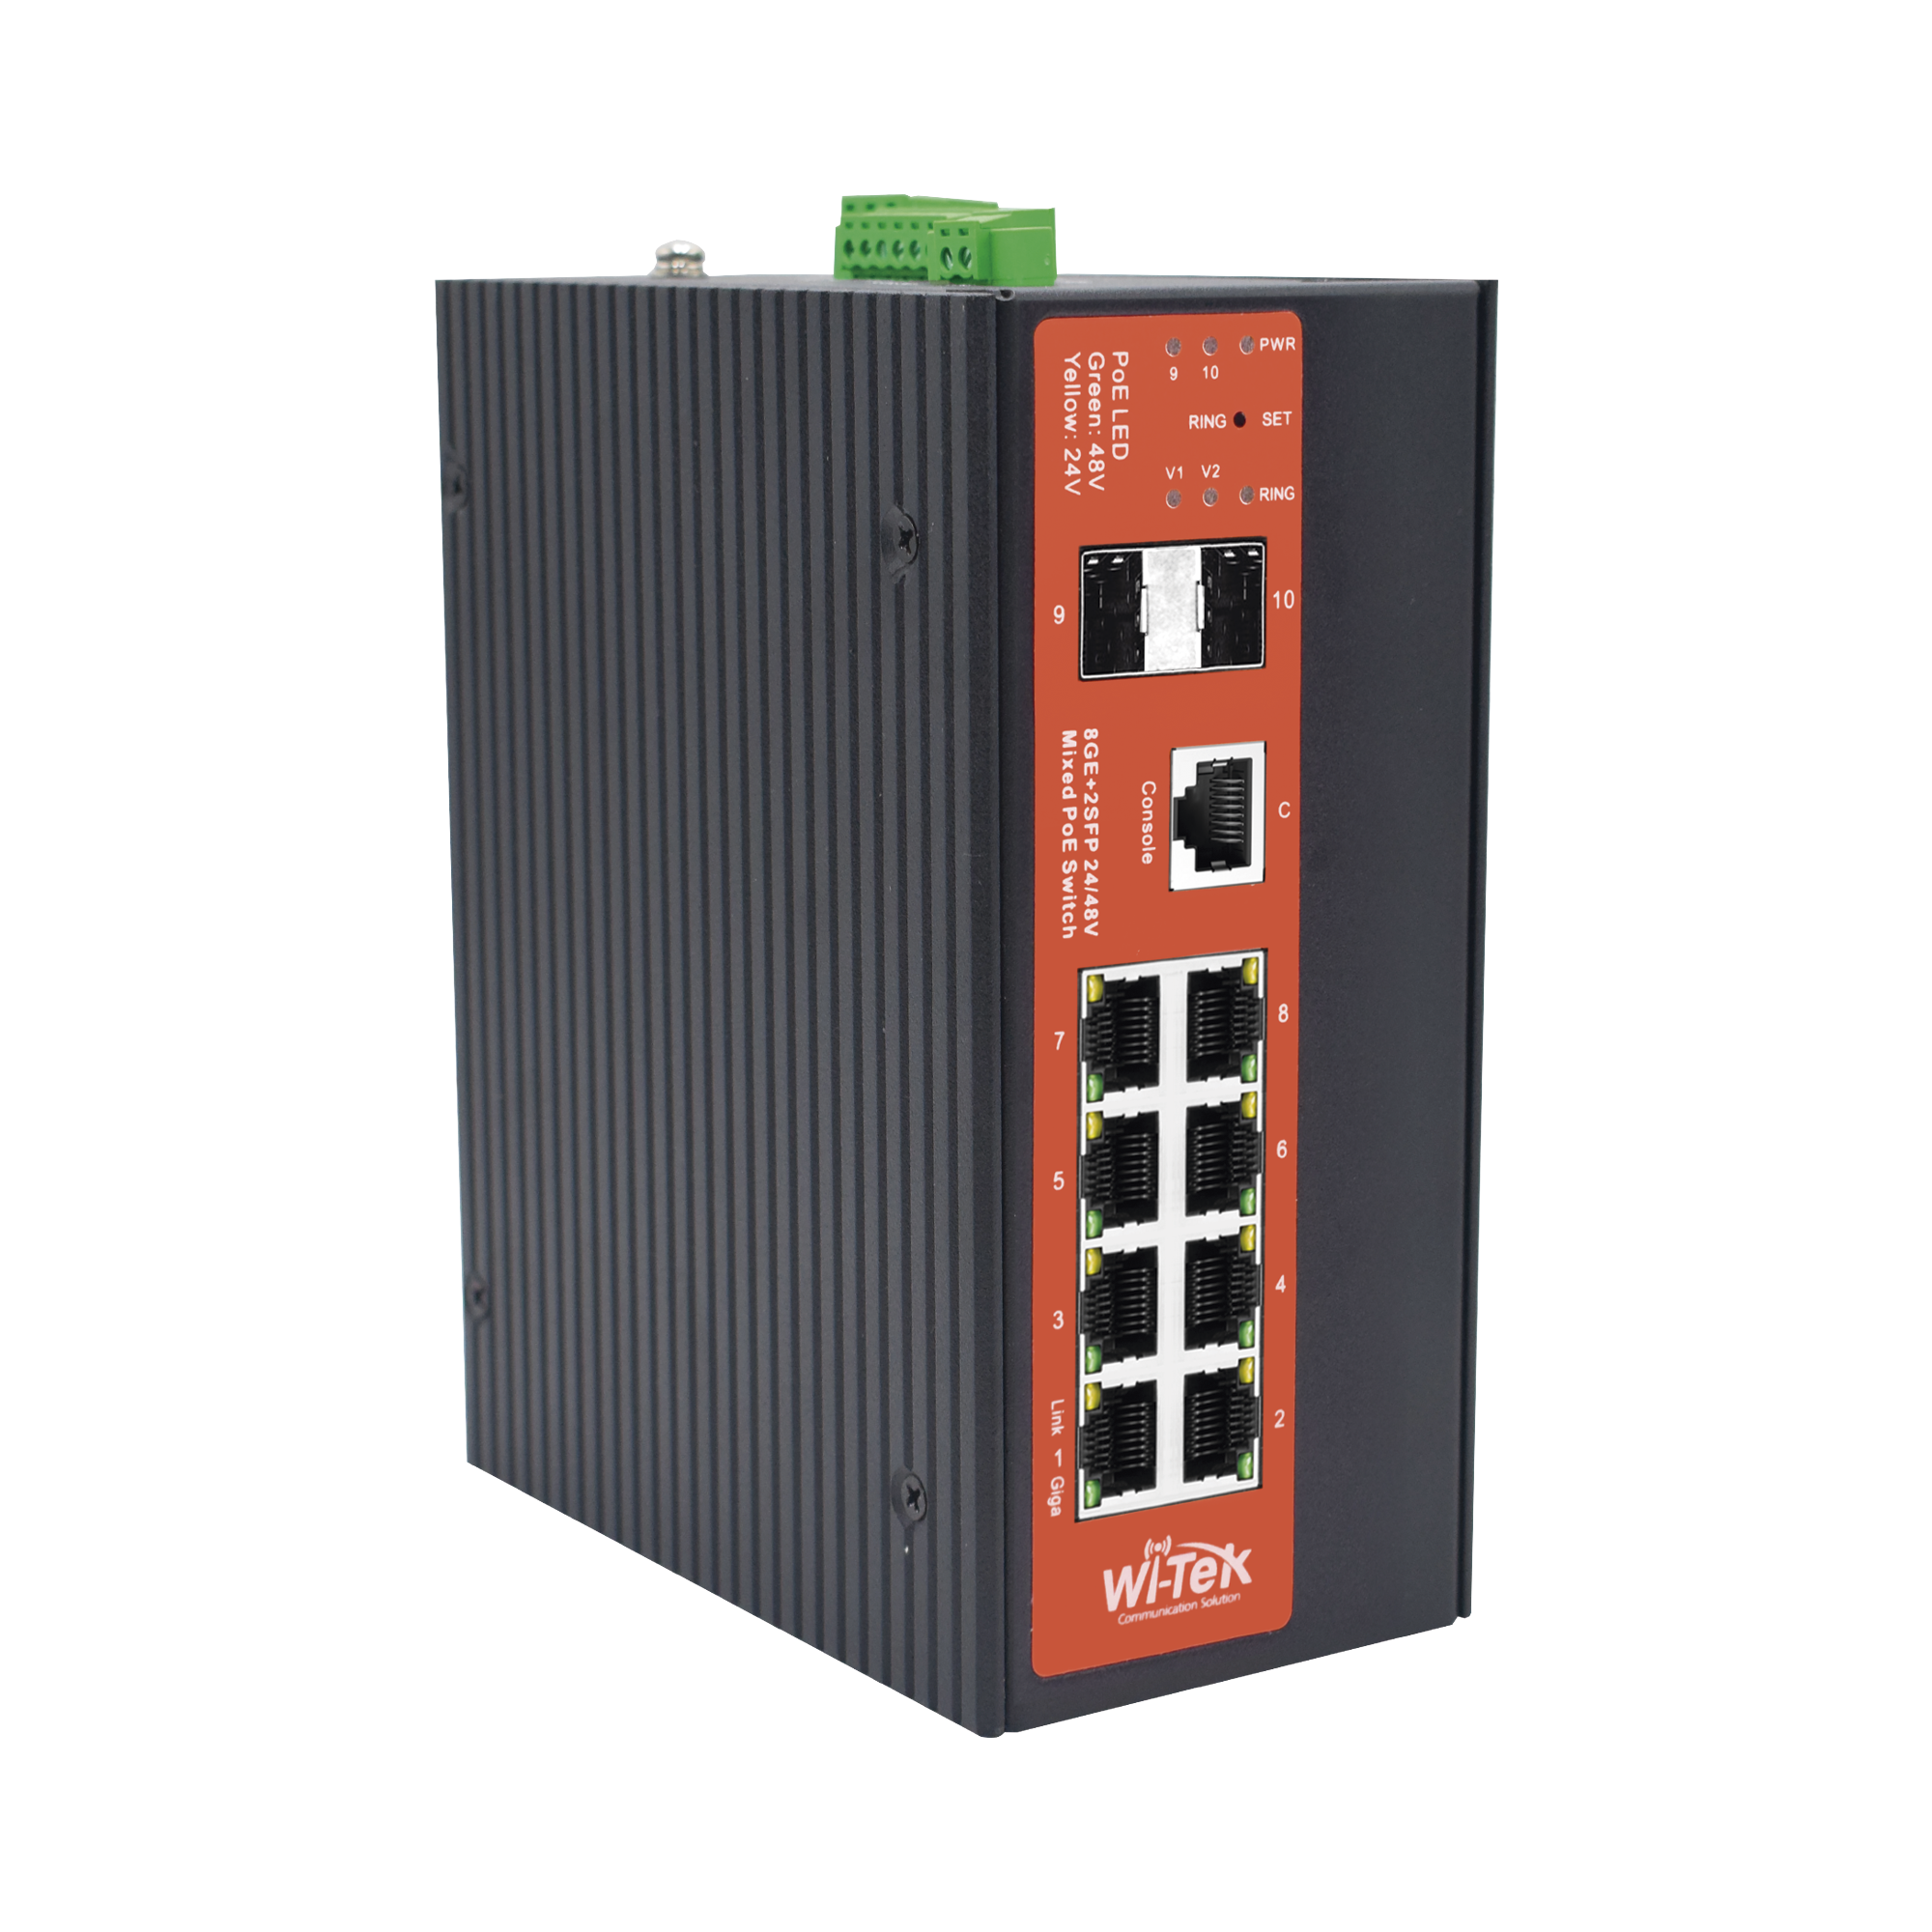 Switch Industrial administrable de 8 puertos Gigabit Ethernet con PoE 802.3af/at y 24V Pasivo + 2 SFP Gigabit, 240 W